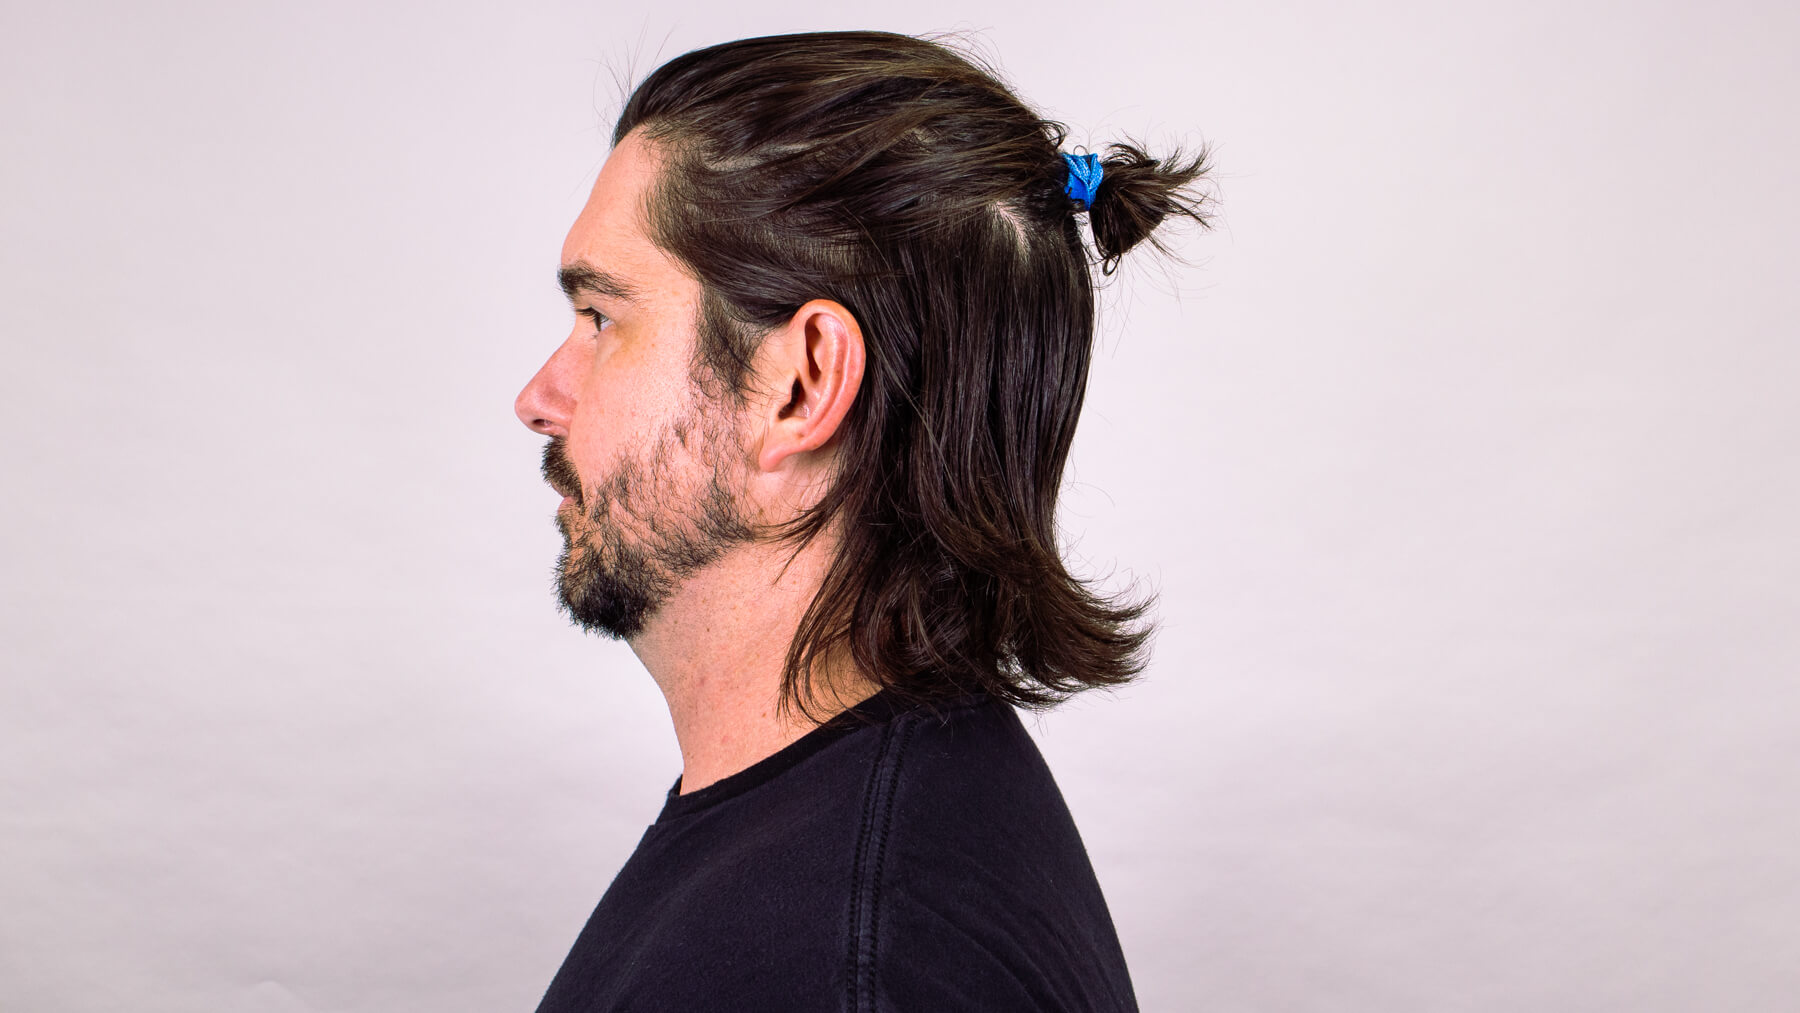 Top knot with awkward stage hairstyle side profile view